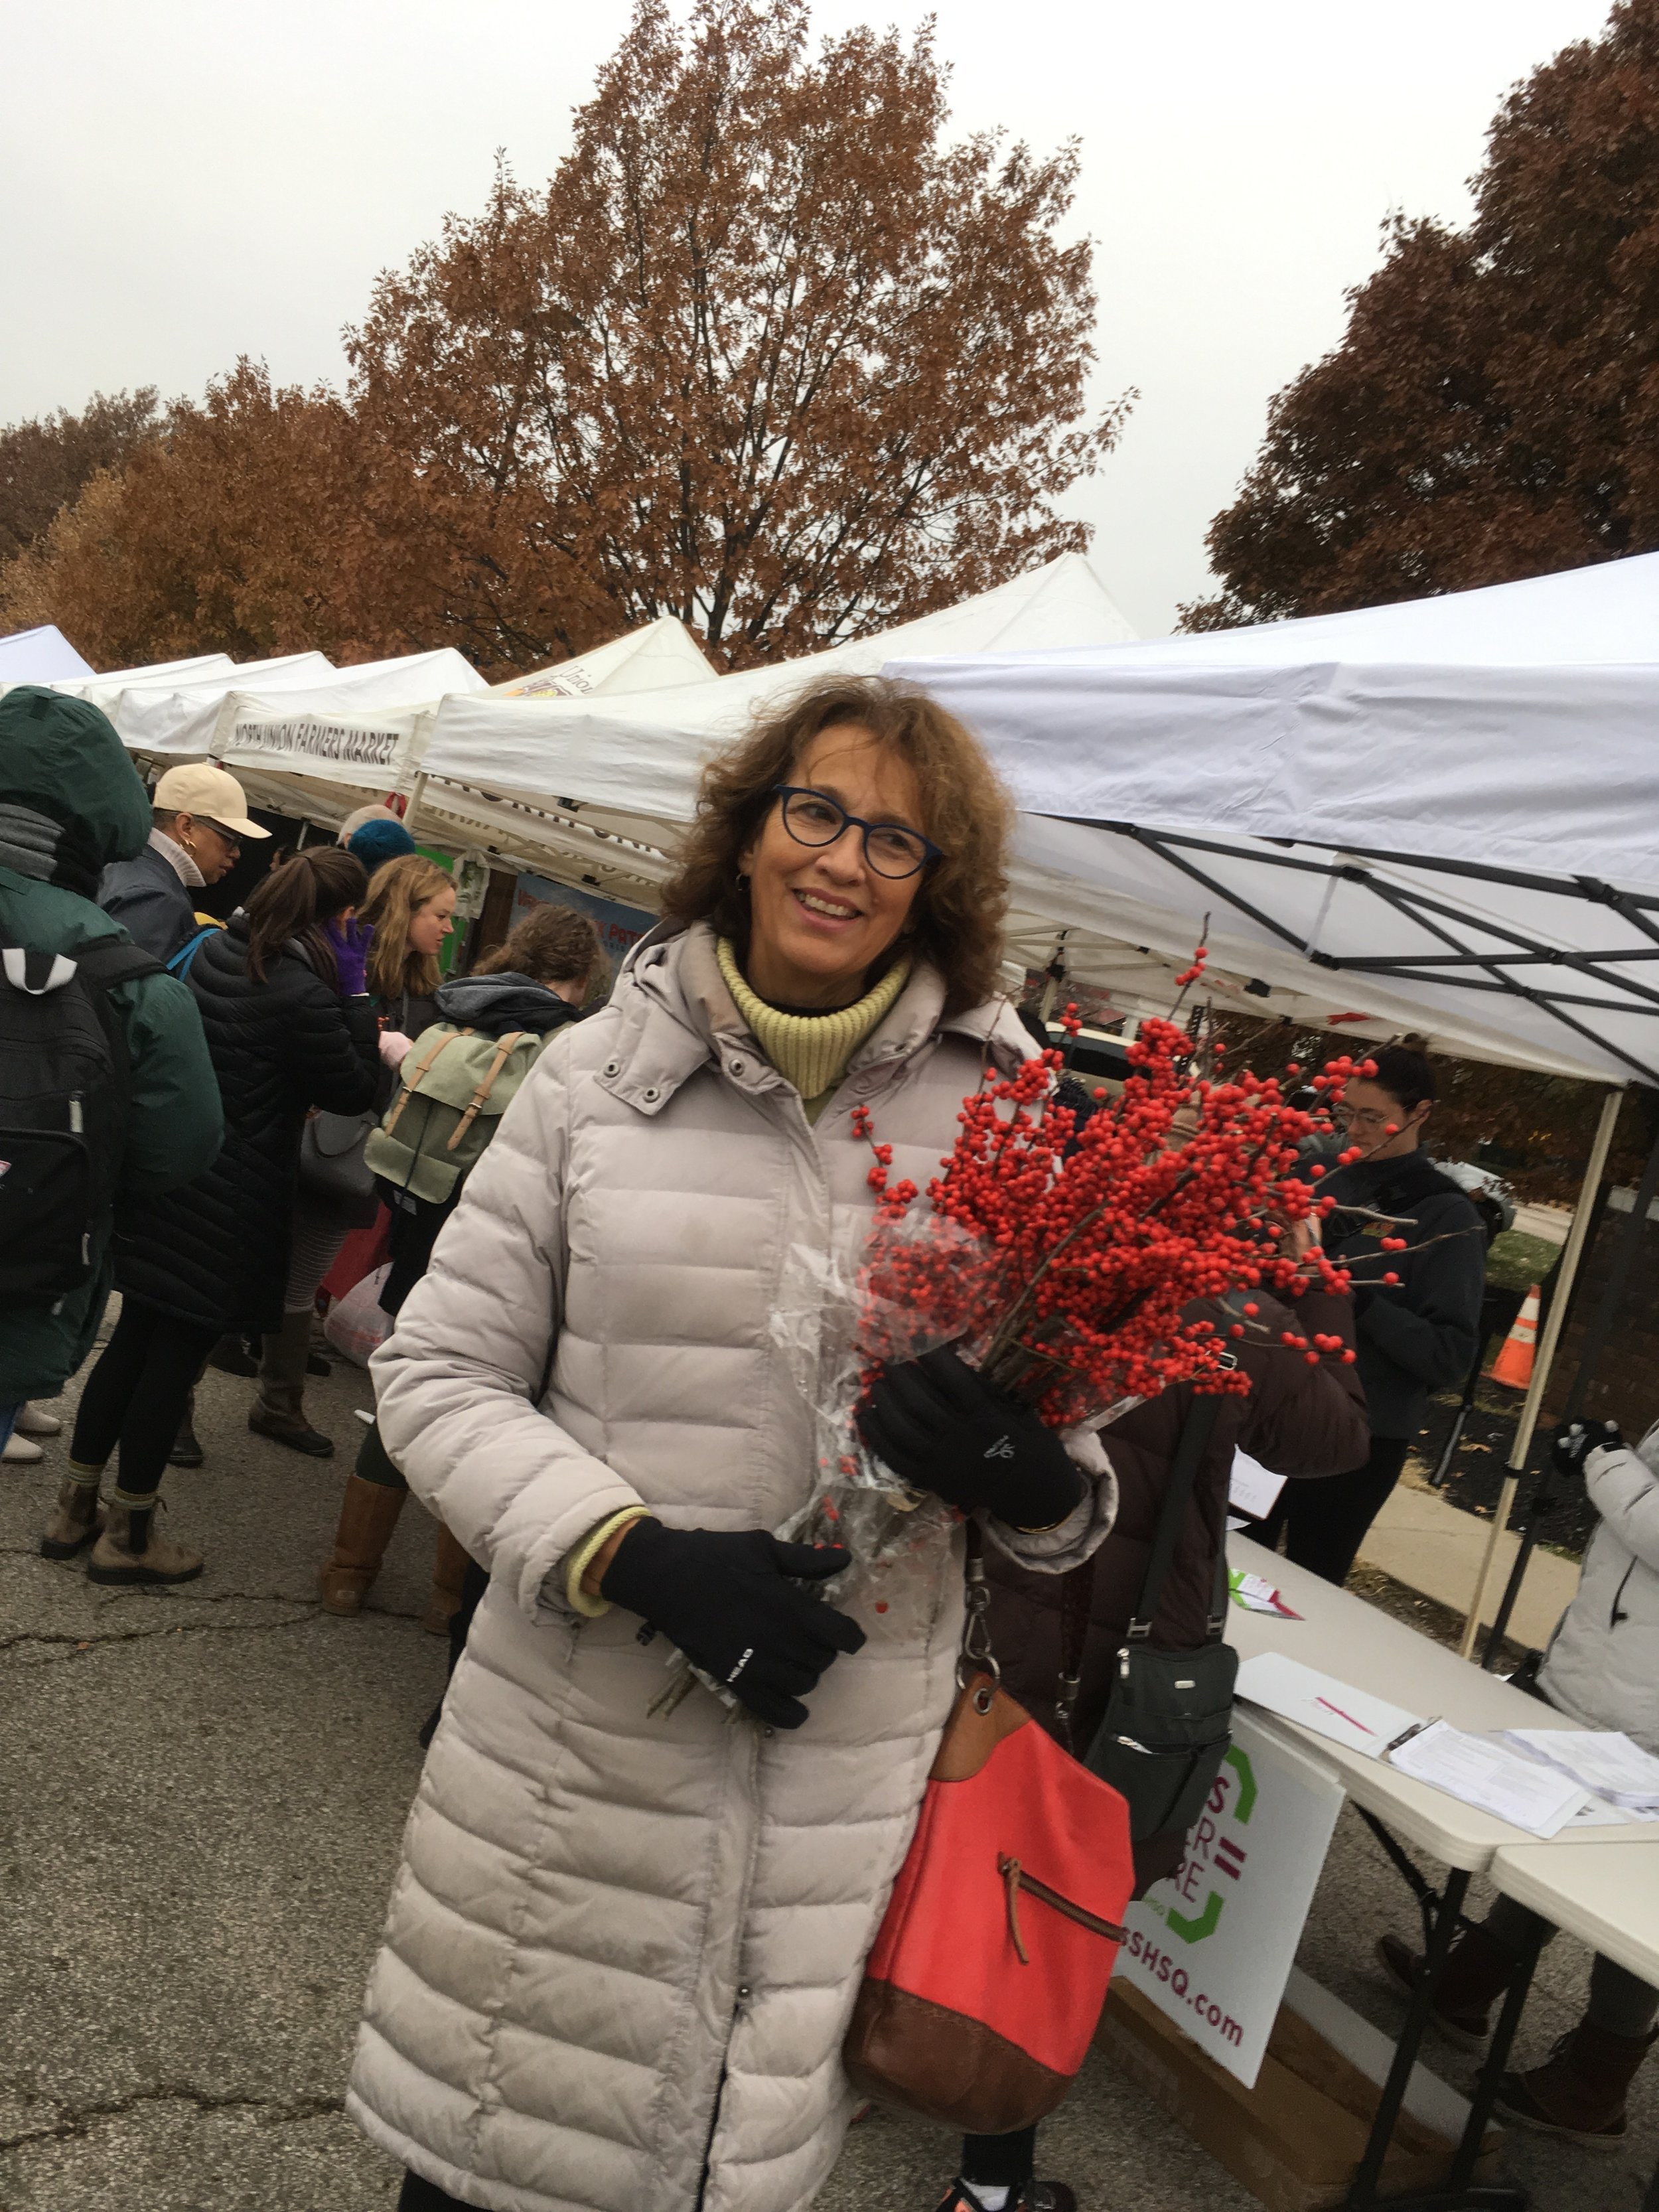 Donita Anderson of North Union Farmers Market, now in its 24th year on Shaker Square.